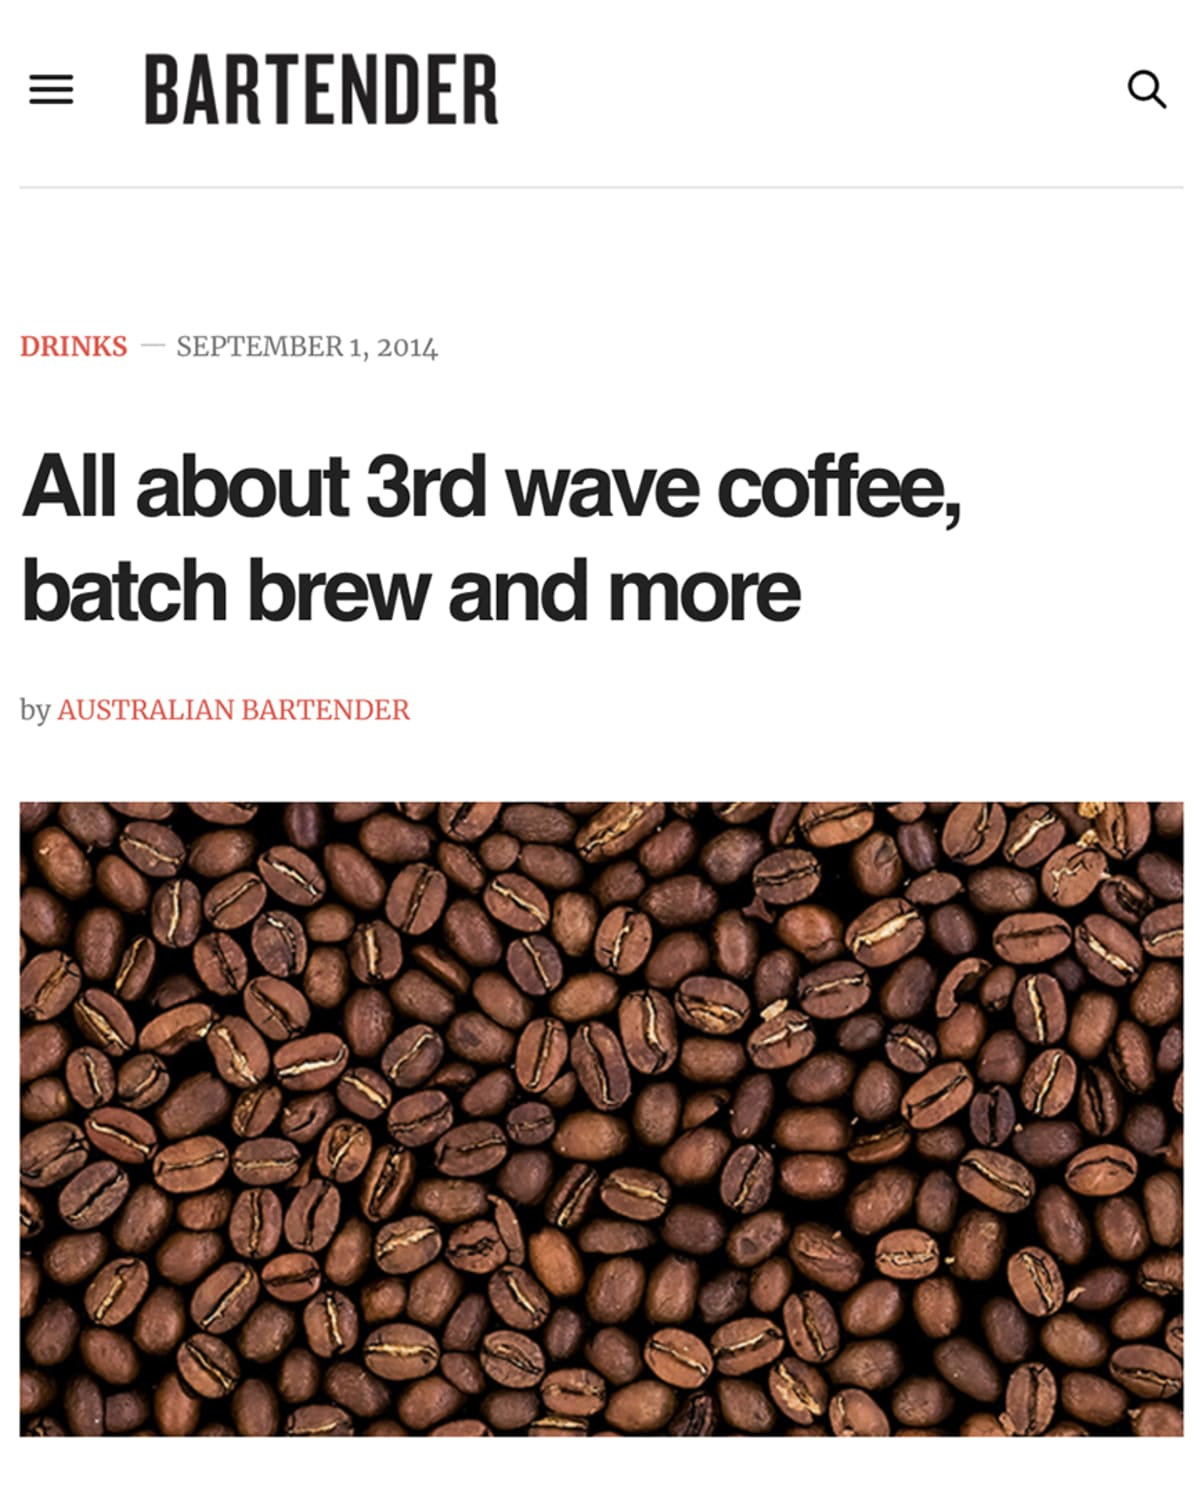 Sam Baygrave, interview about third wave coffee with Reuben